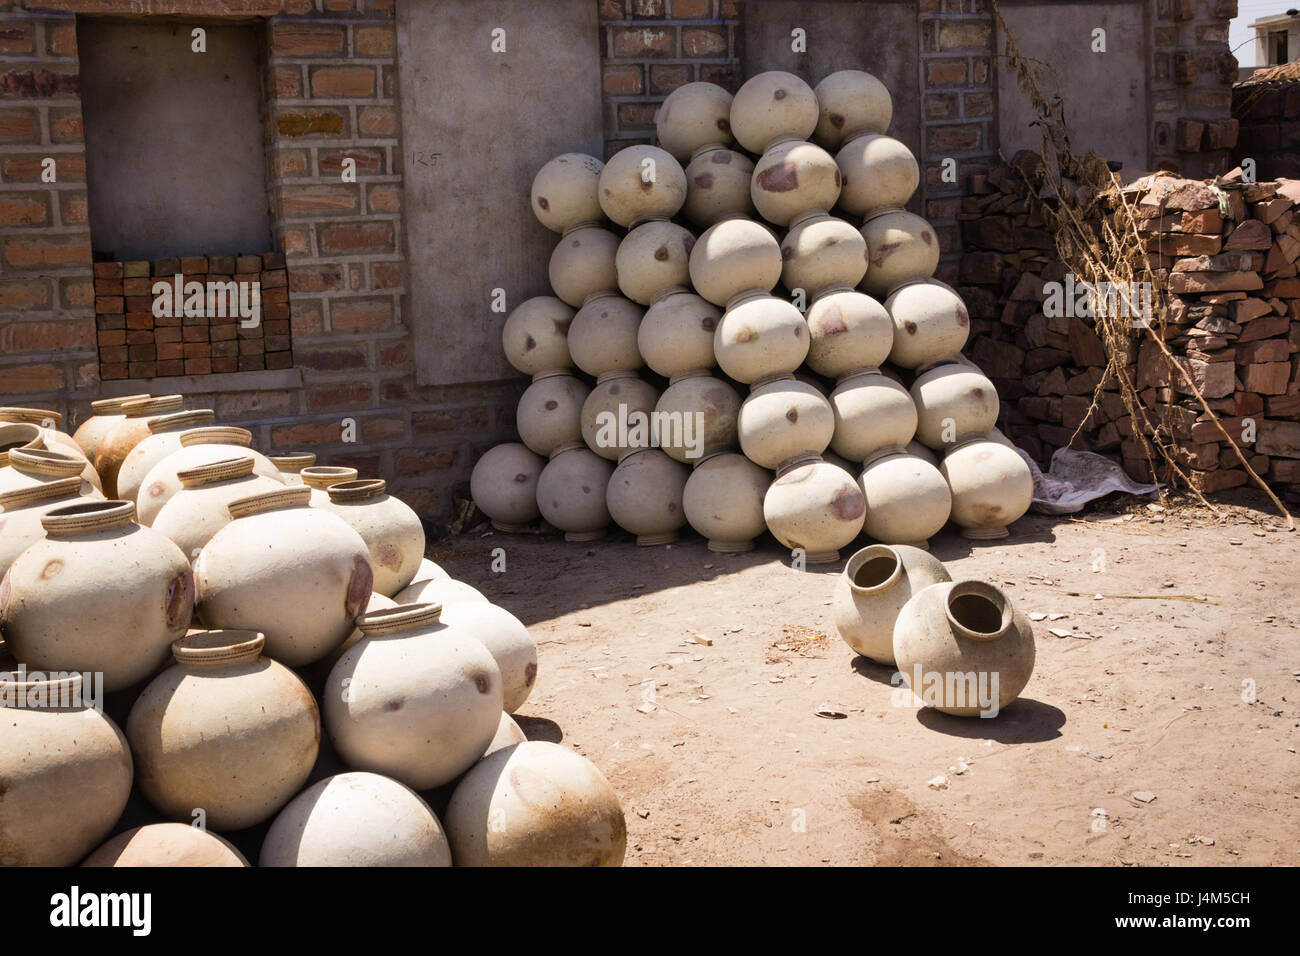 Handmade pottery drying in the sun - Stock Image